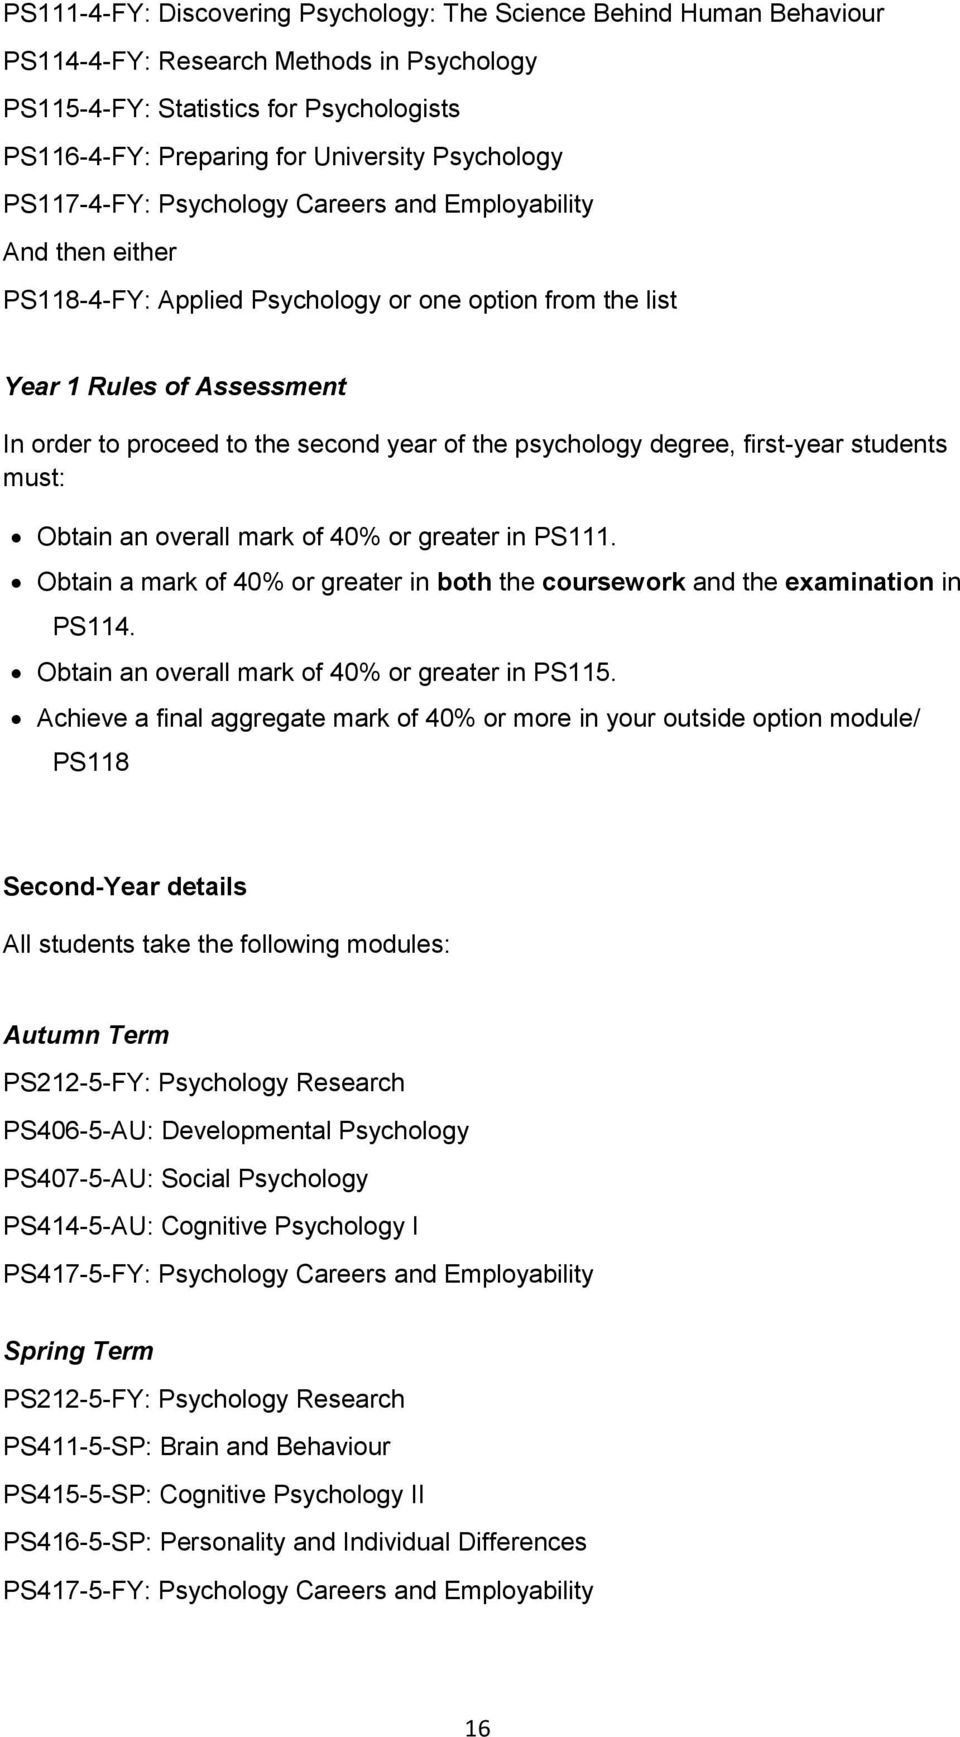 year of the psychology degree, first-year students must: Obtain an overall mark of 40% or greater in PS111. Obtain a mark of 40% or greater in both the coursework and the examination in PS114.